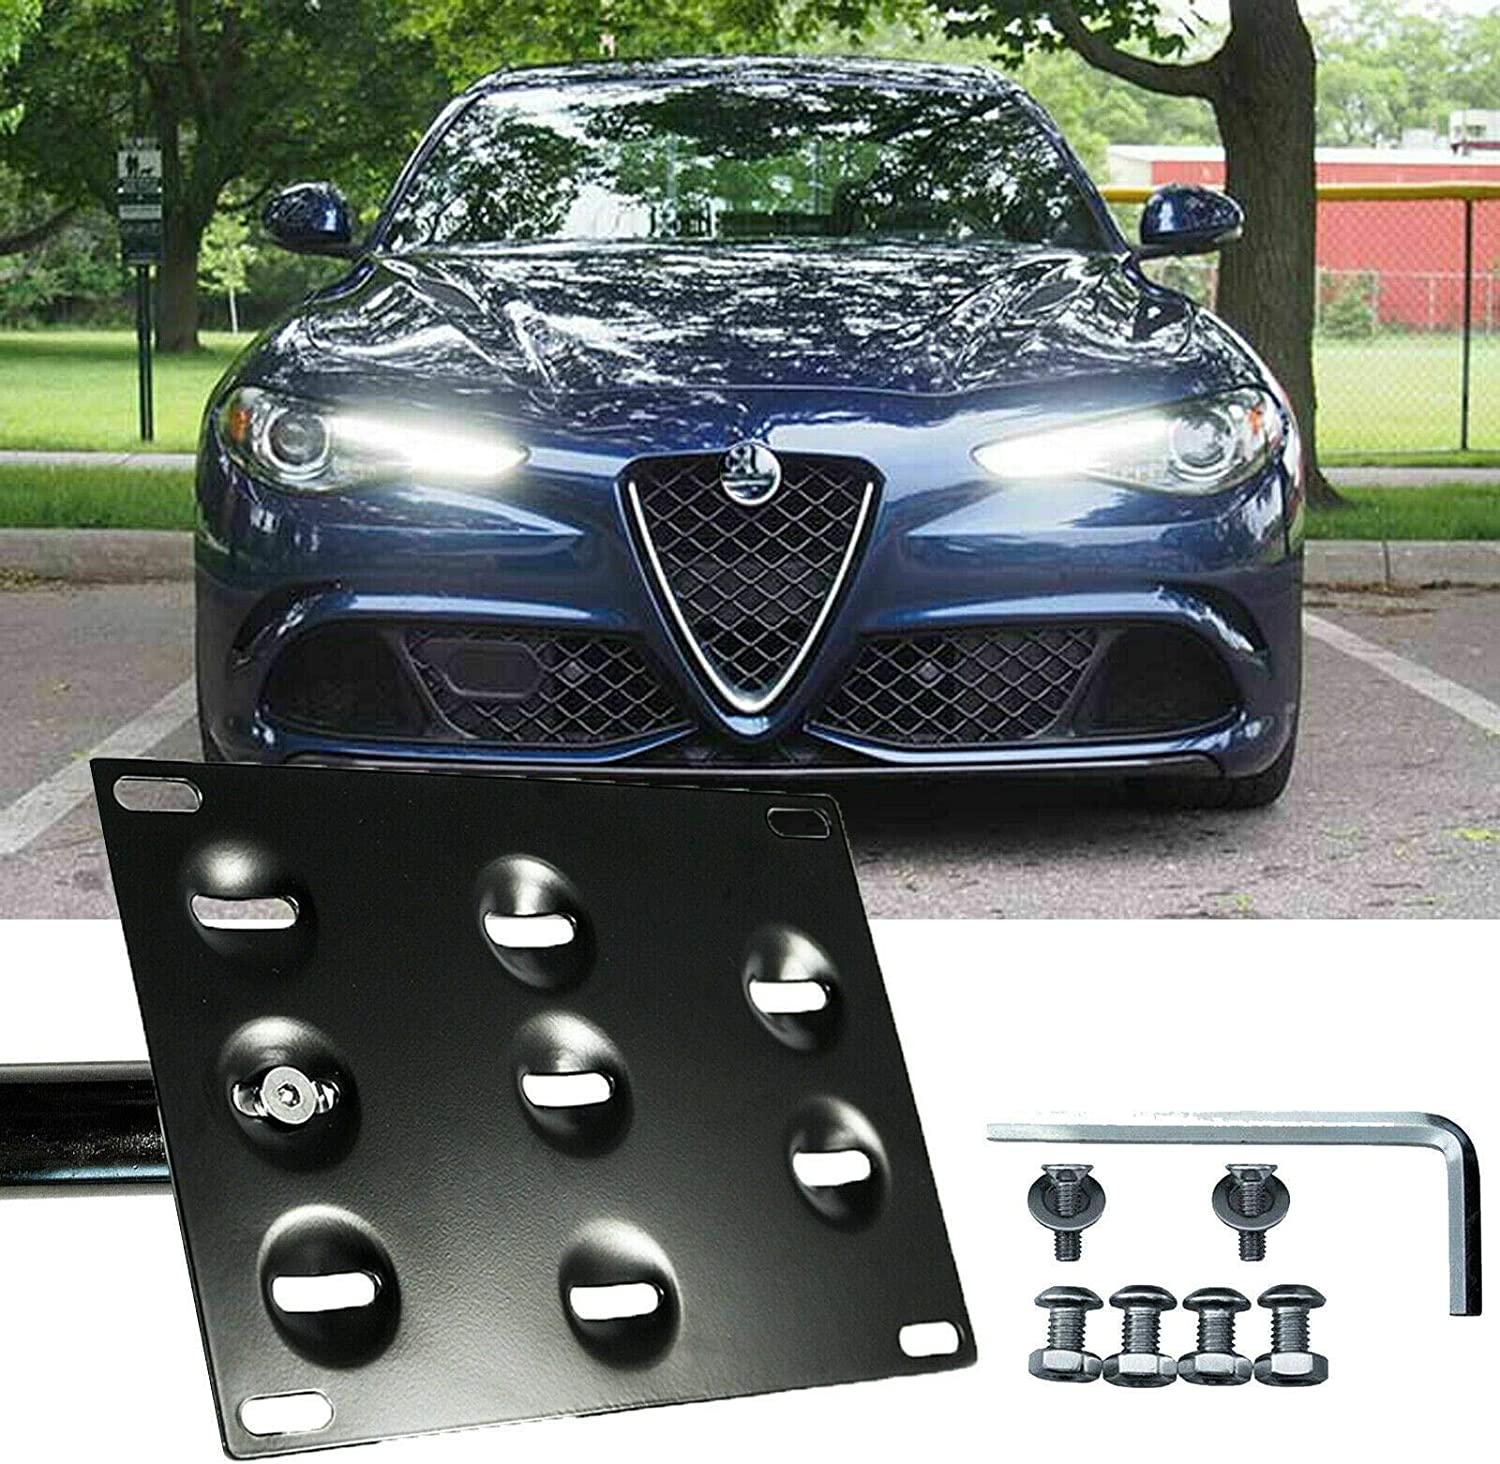 Xotic Tech for Alfa Romeo Stelvio 2018 2019 Front Bumper Tow Hook License Plate - No Drill Black Mounting Bracket Adapter Kit